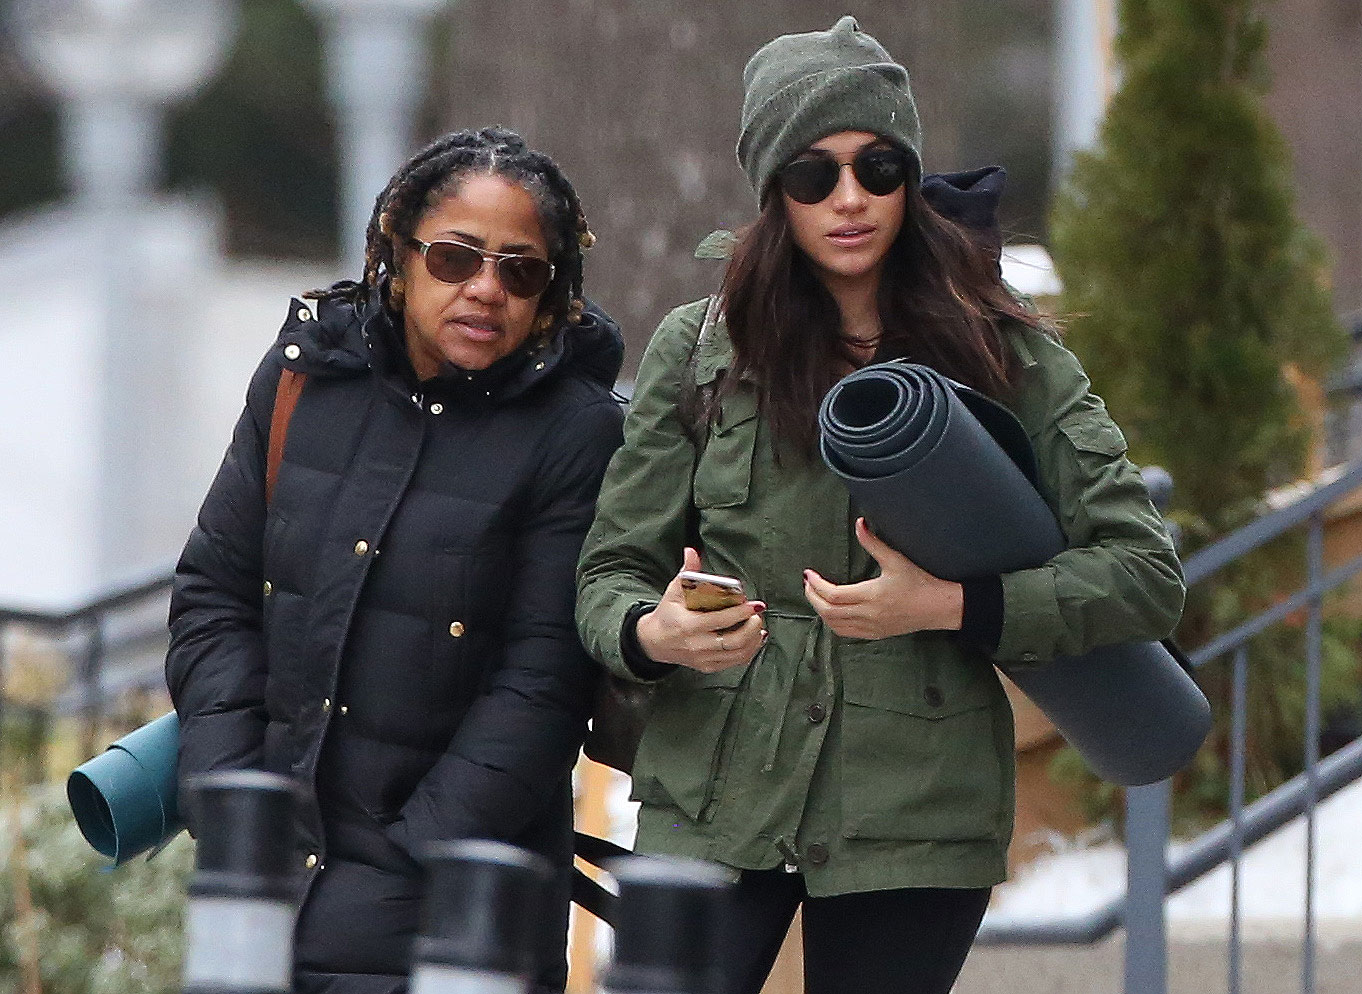 prince harry s girlfriend meghan markle goes to yoga with mom people com https people com royals photos meghan markle steps out for post christmas yoga with her mom